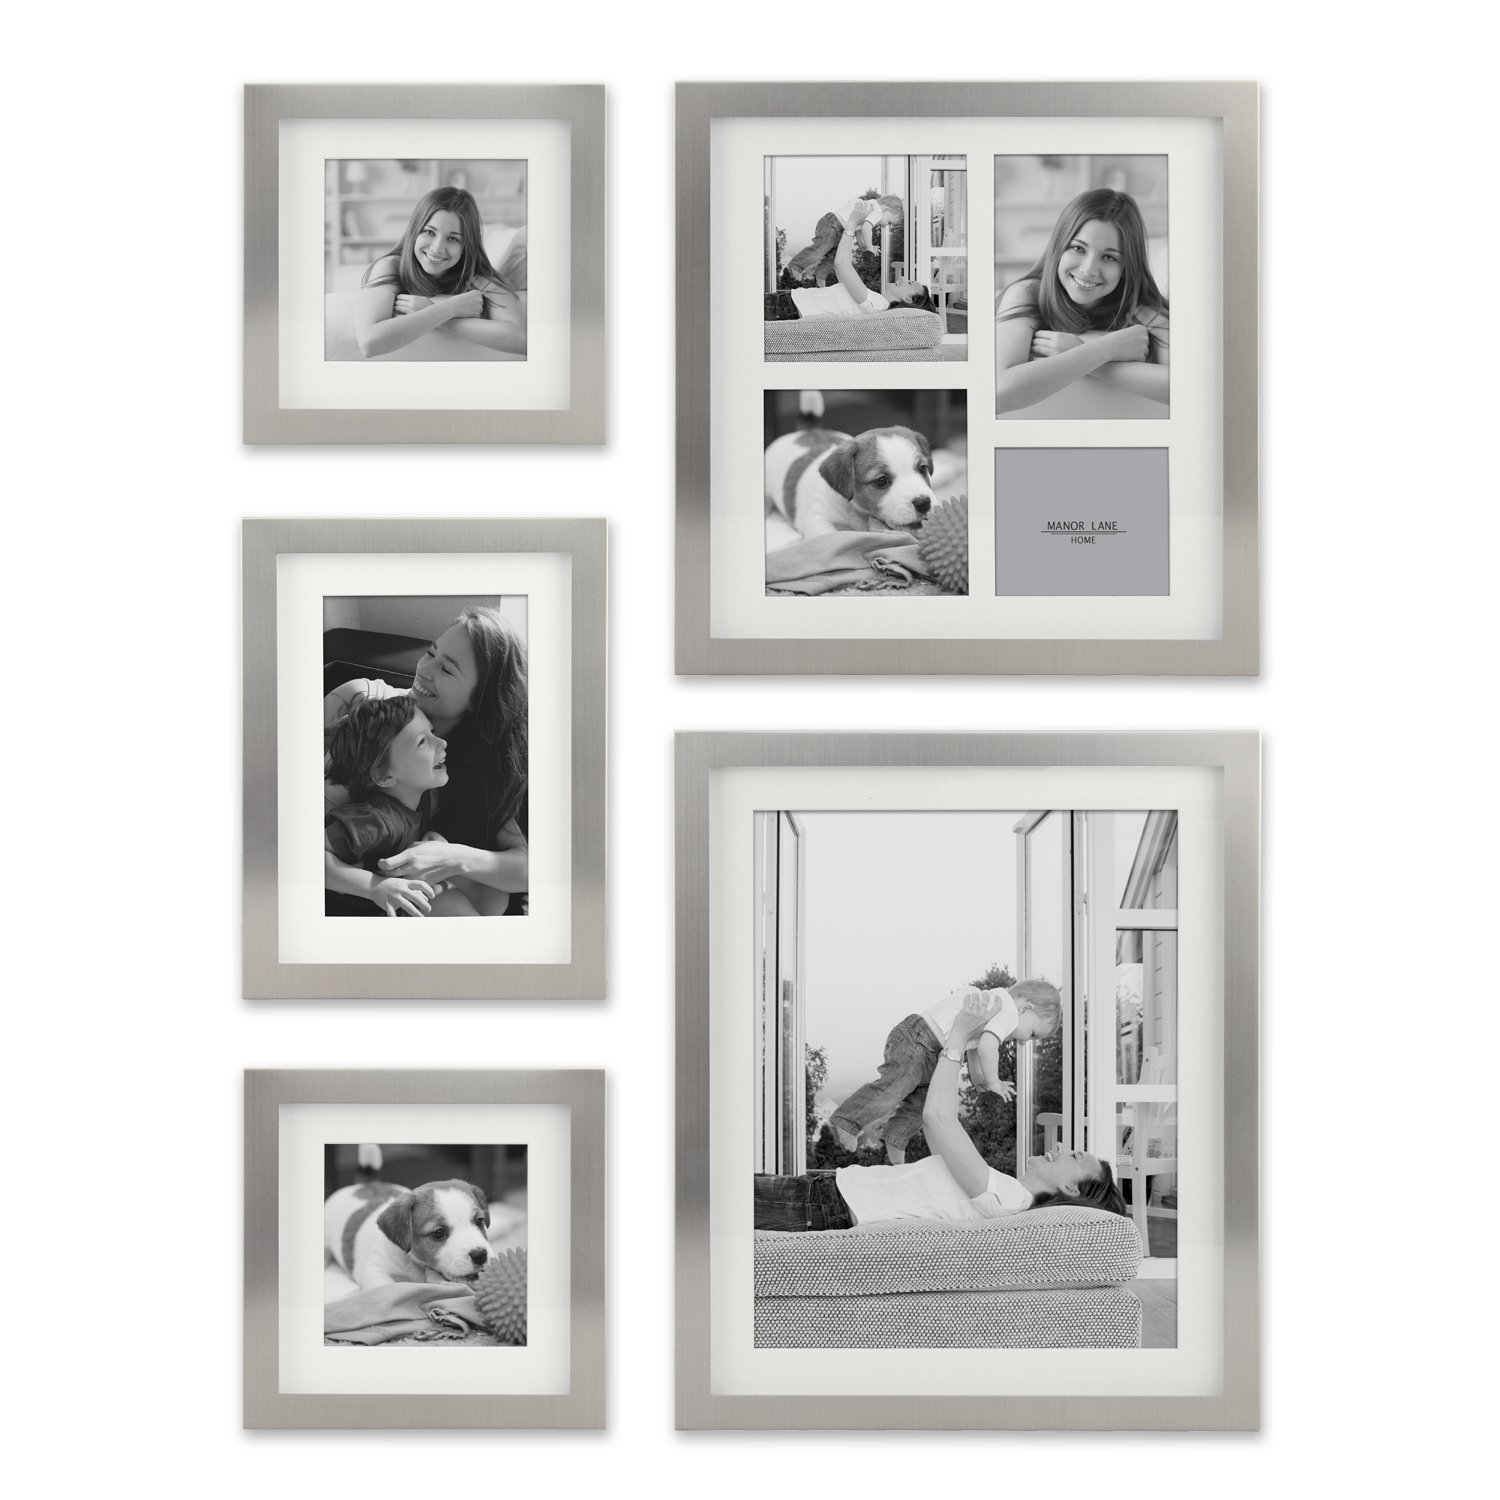 Stonebriar Decorative Stamped Silver 5 Piece Photo Frame Set, Wall Hanging Display, Modern Gallery Wall Set, Gift Idea for Engagements, Weddings, and Birthdays by Stonebriar